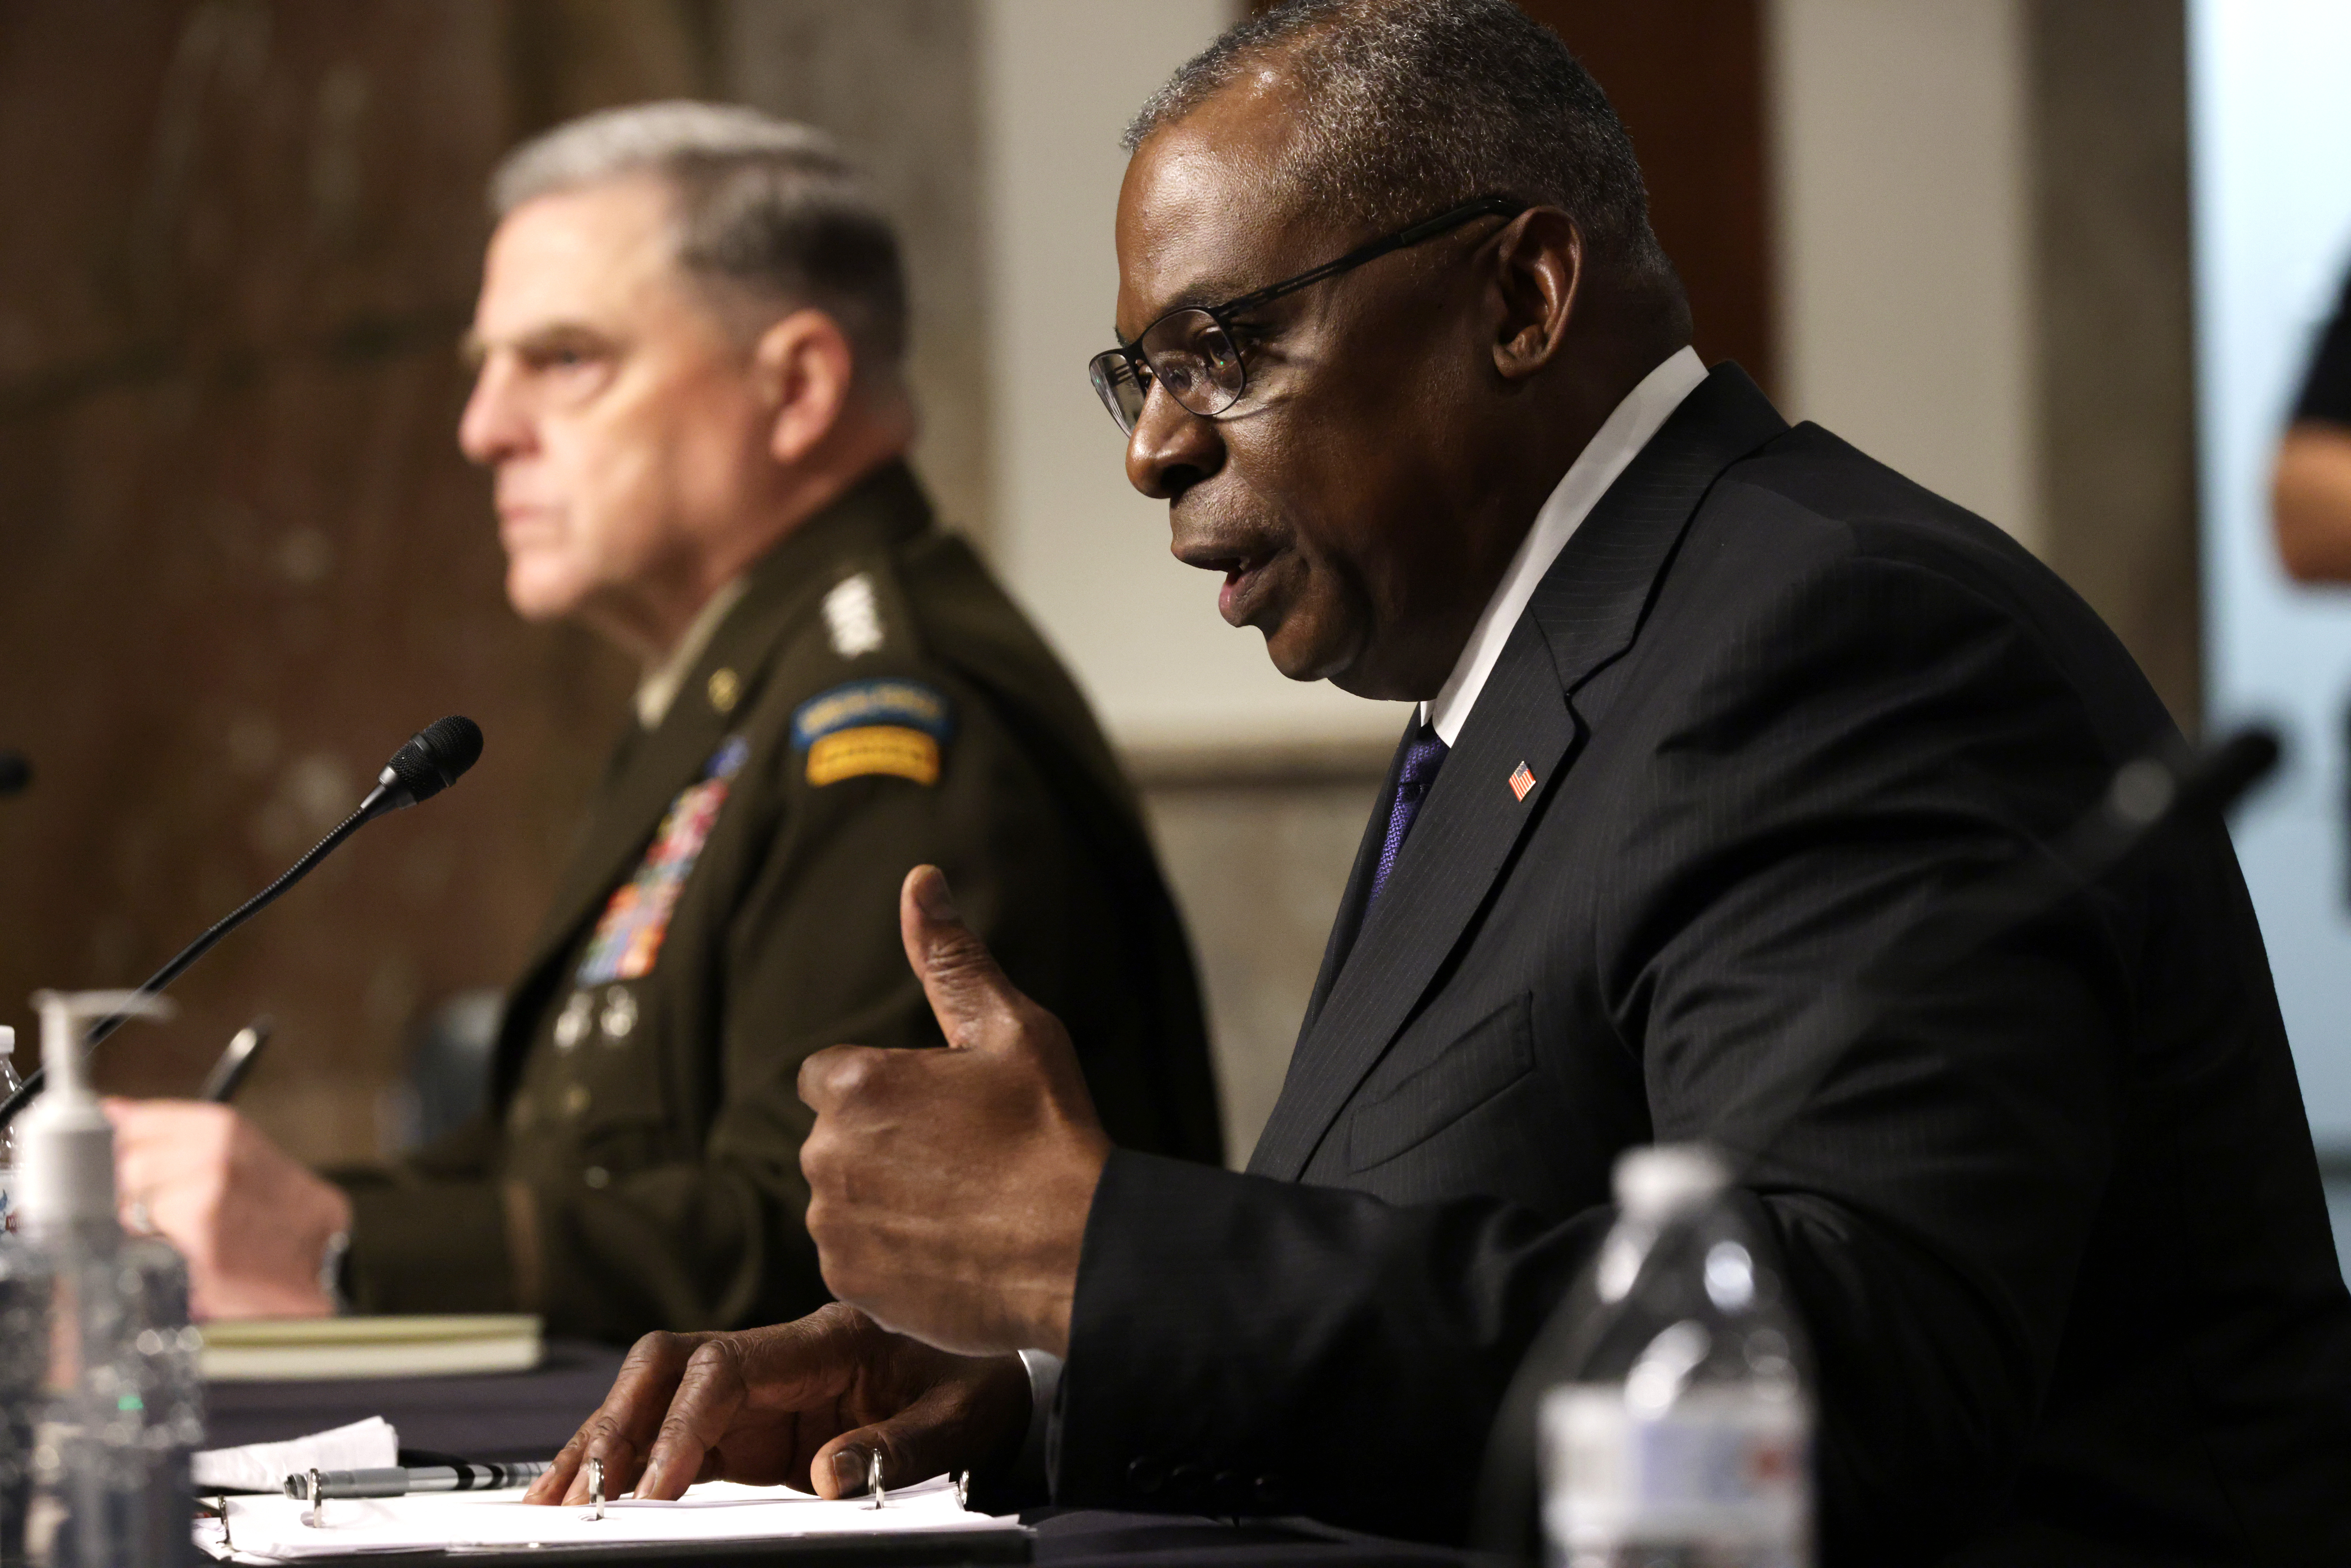 U.S. Secretary of Defense Lloyd Austin (right) and Chairman of the Joint Chiefs of Staff Gen. Mark Milley testify during a hearing before Senate Armed Services Committee at Dirksen Senate Office Building September 28, 2021 on Capitol Hill in Washington, DC. (Photo by Alex Wong/Getty Images)